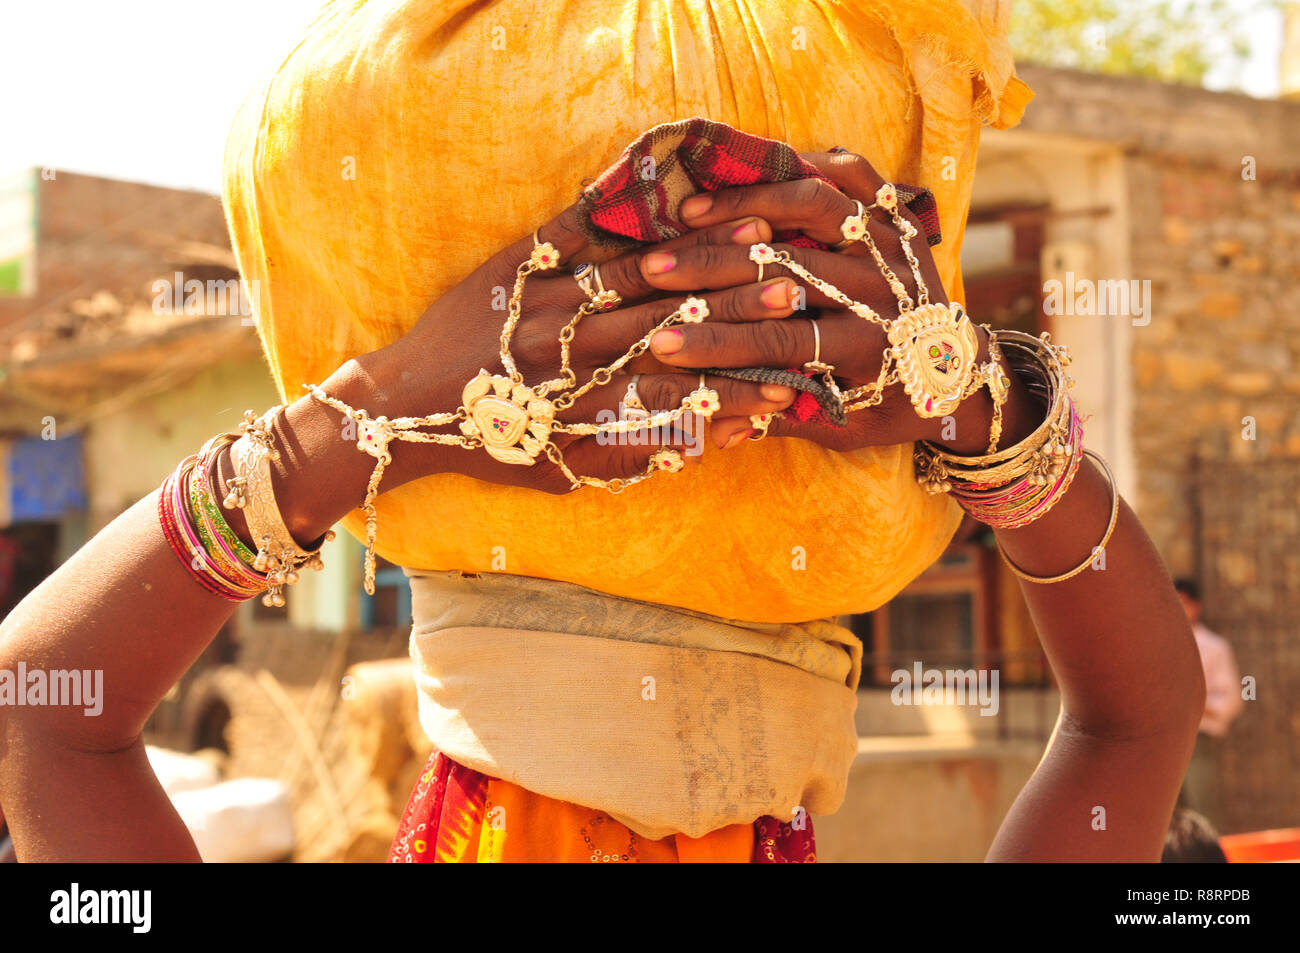 Gujarat: A young woman carring water on her head and showing her bracelets - Stock Image